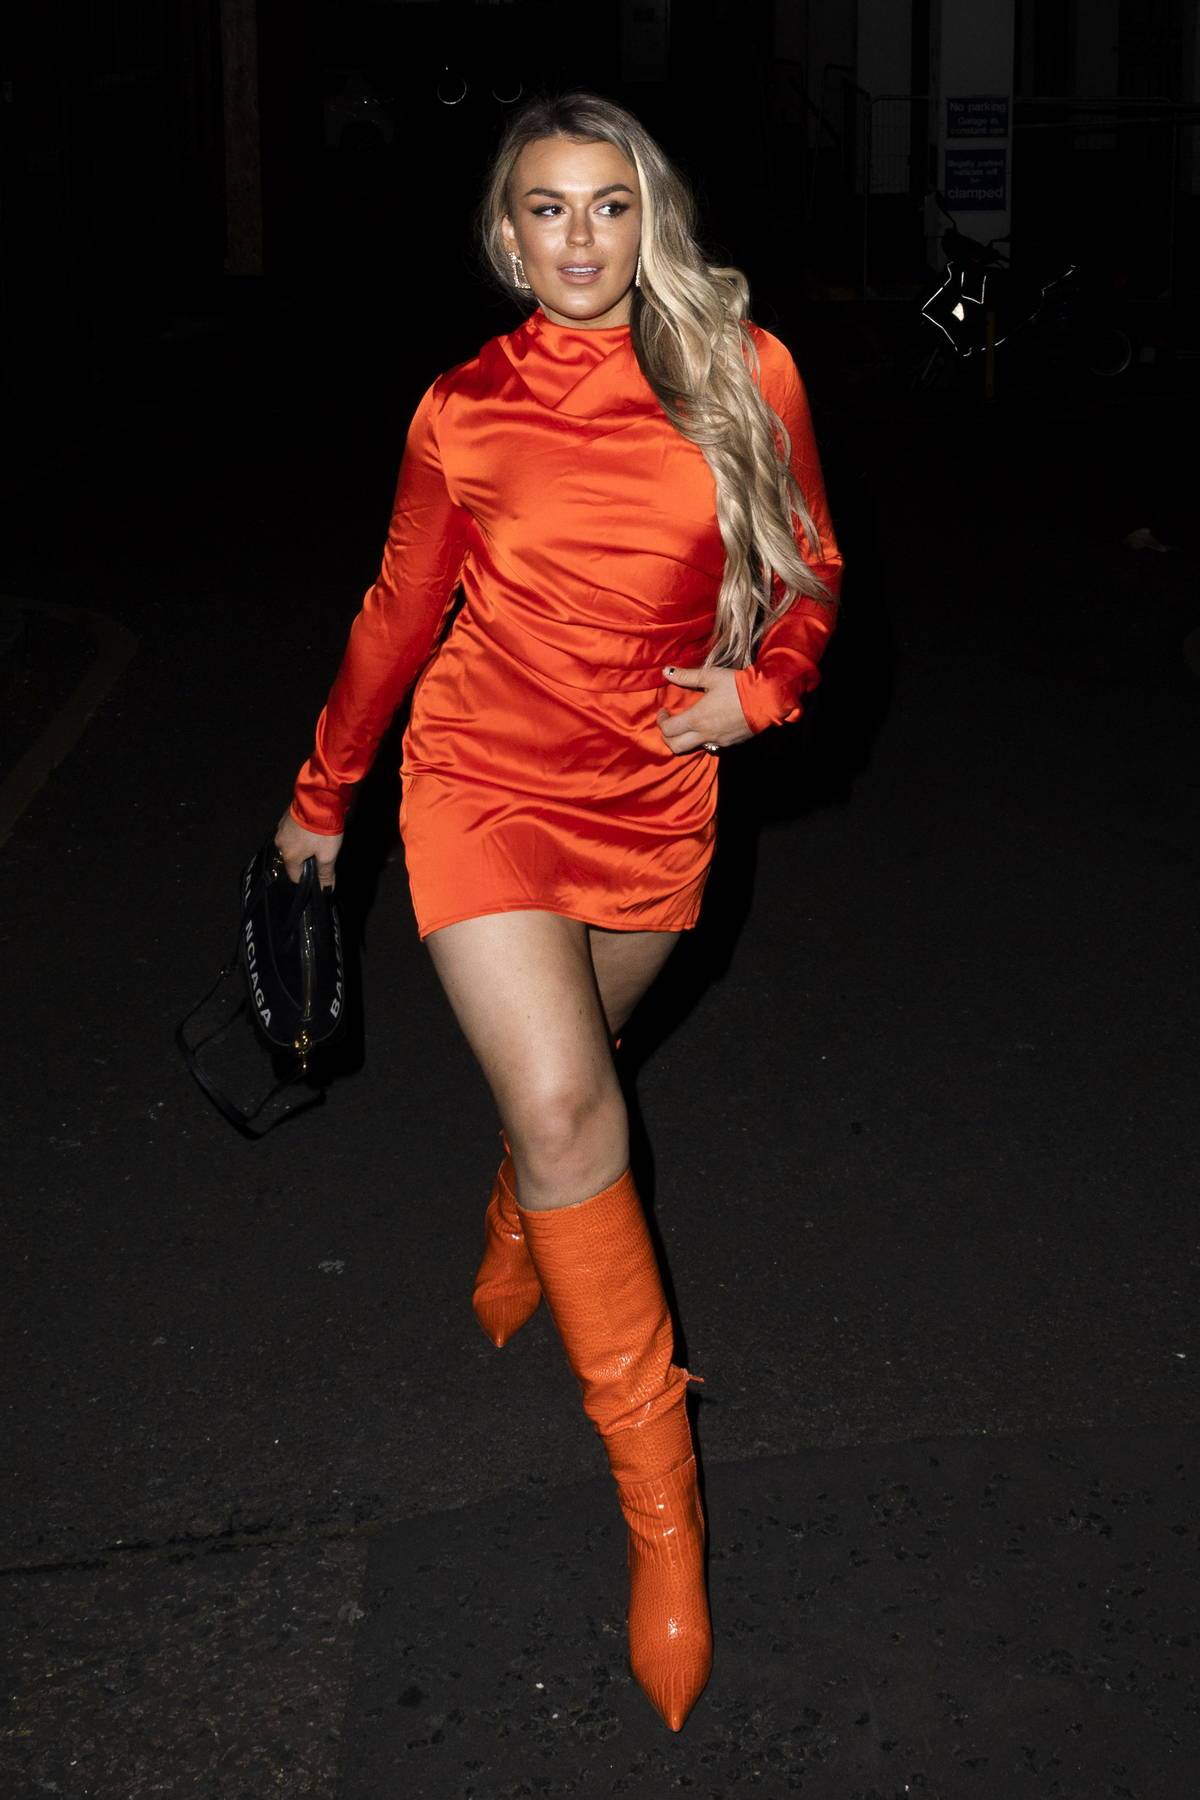 Tallia Storm looks striking in a bright orange mini dress with matching knee-high boots during a night out in London, UK